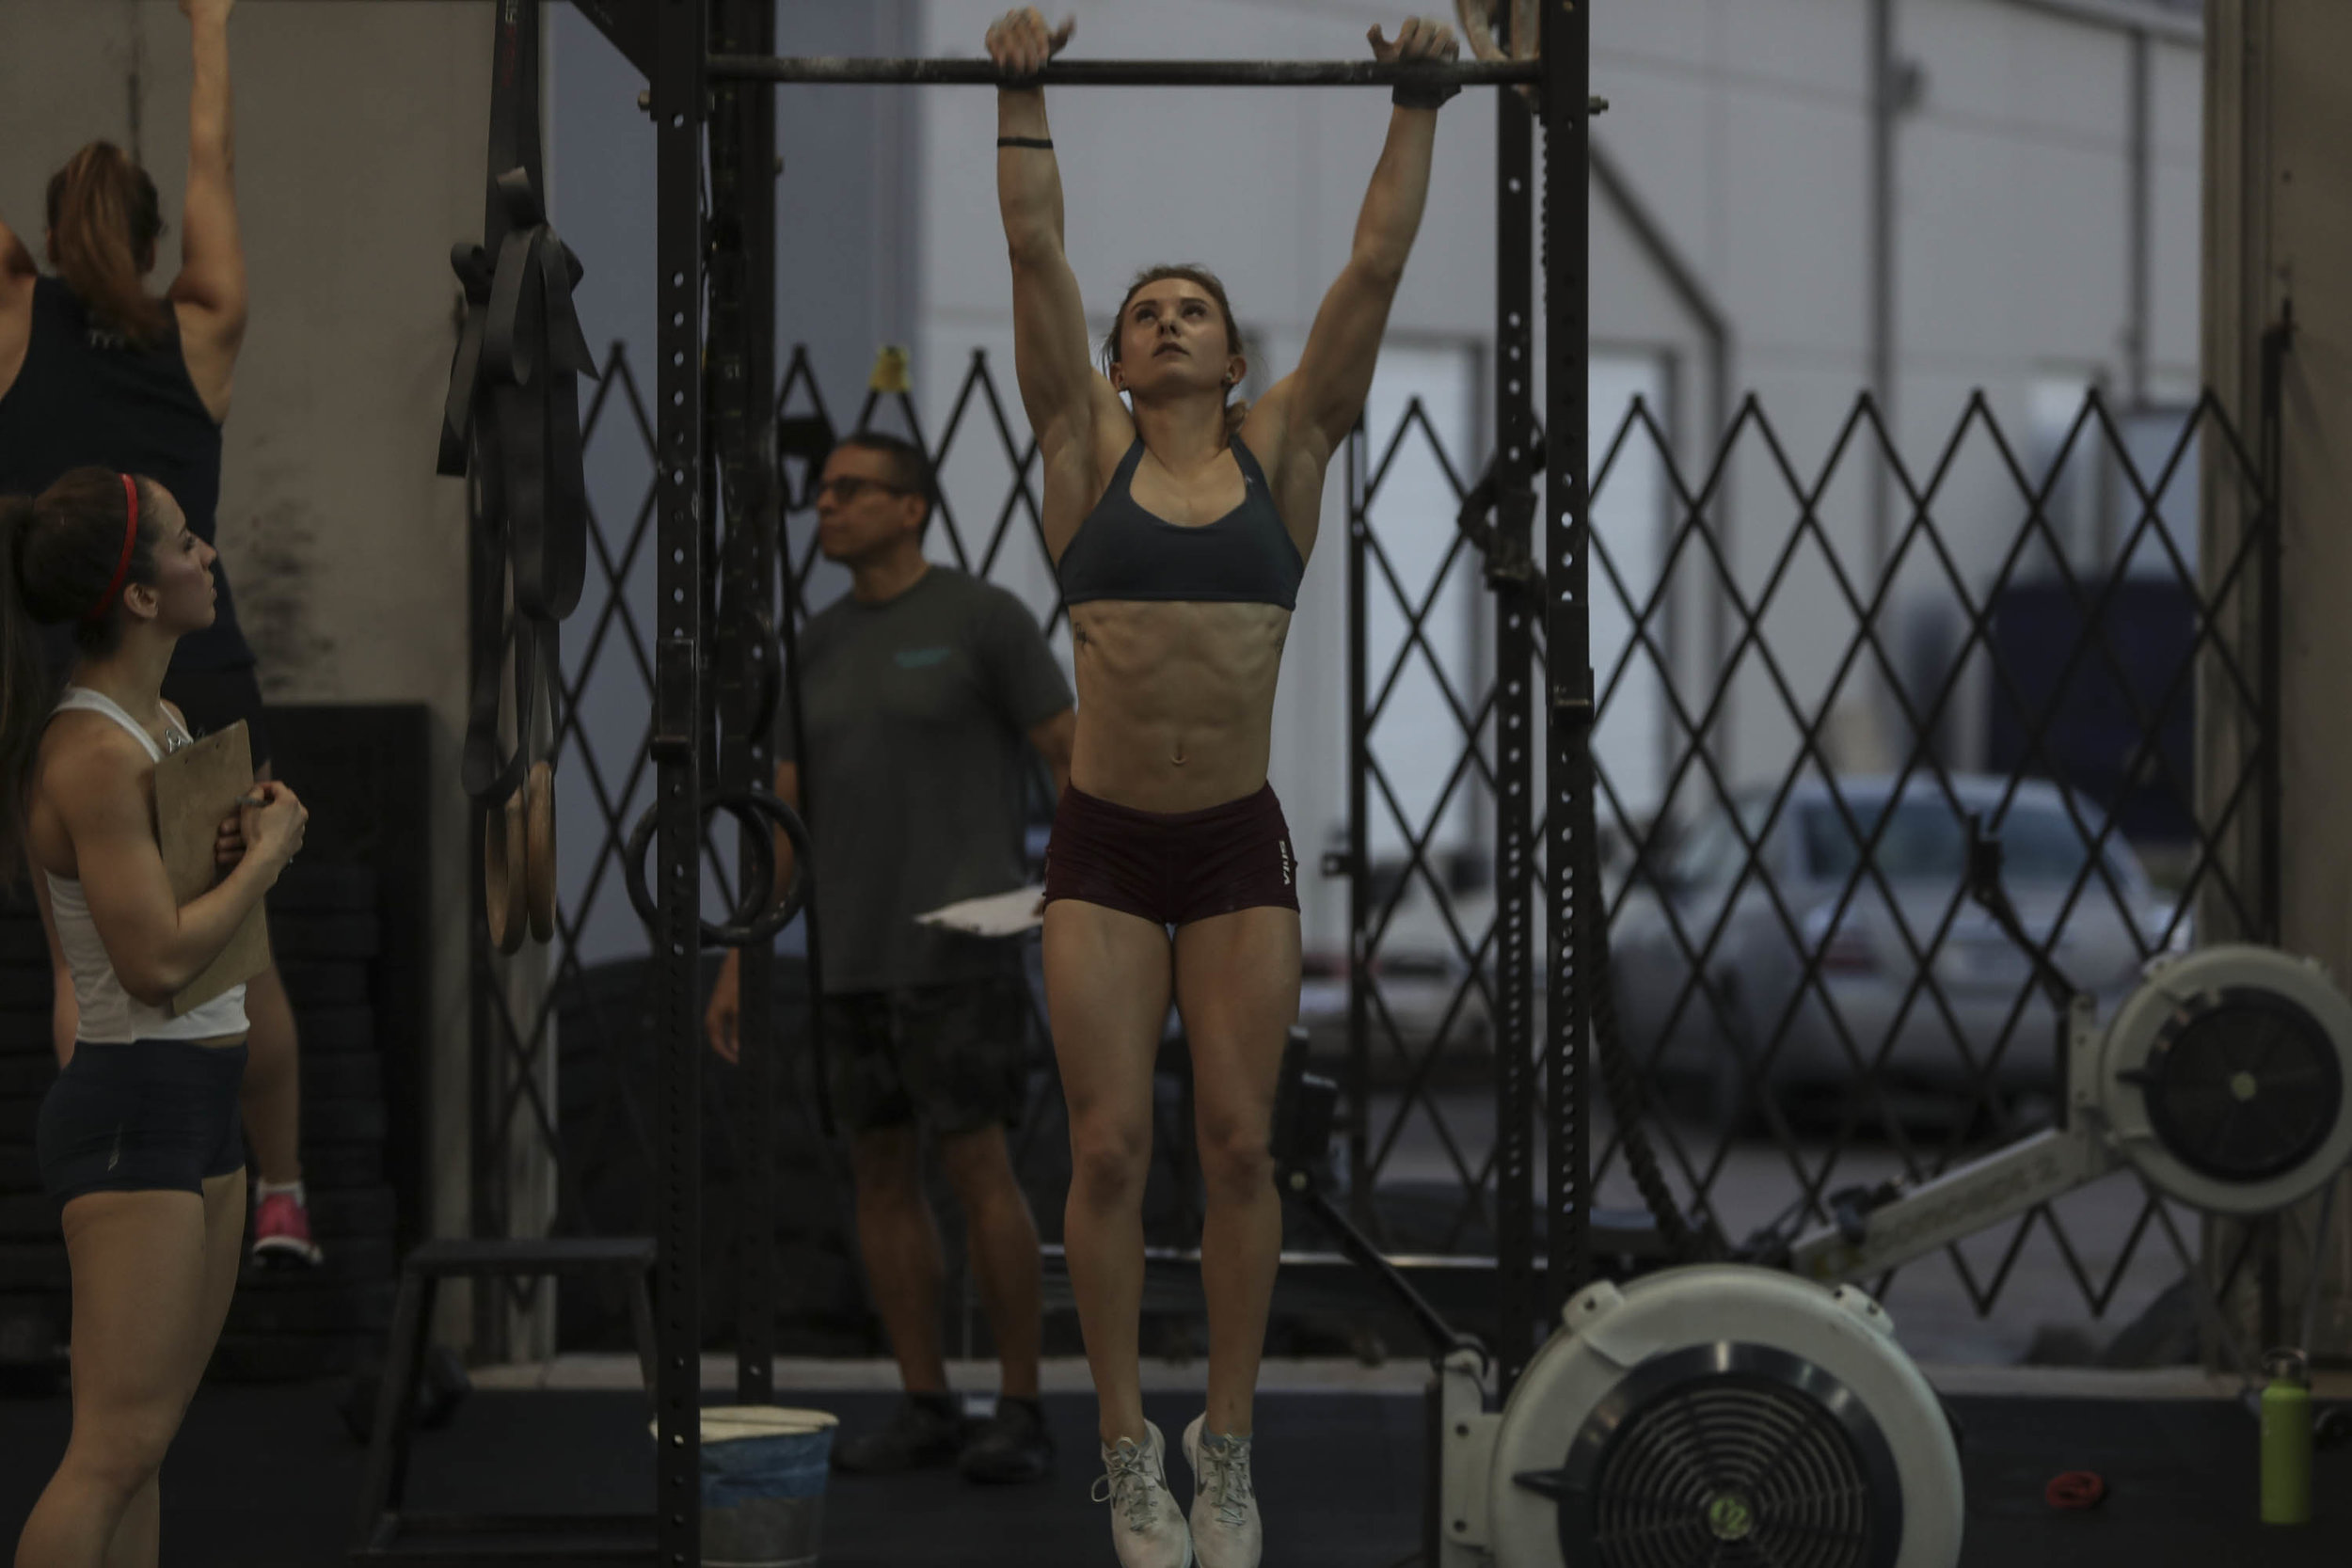 Pull-ups and L- Pull-ups are not created equal.